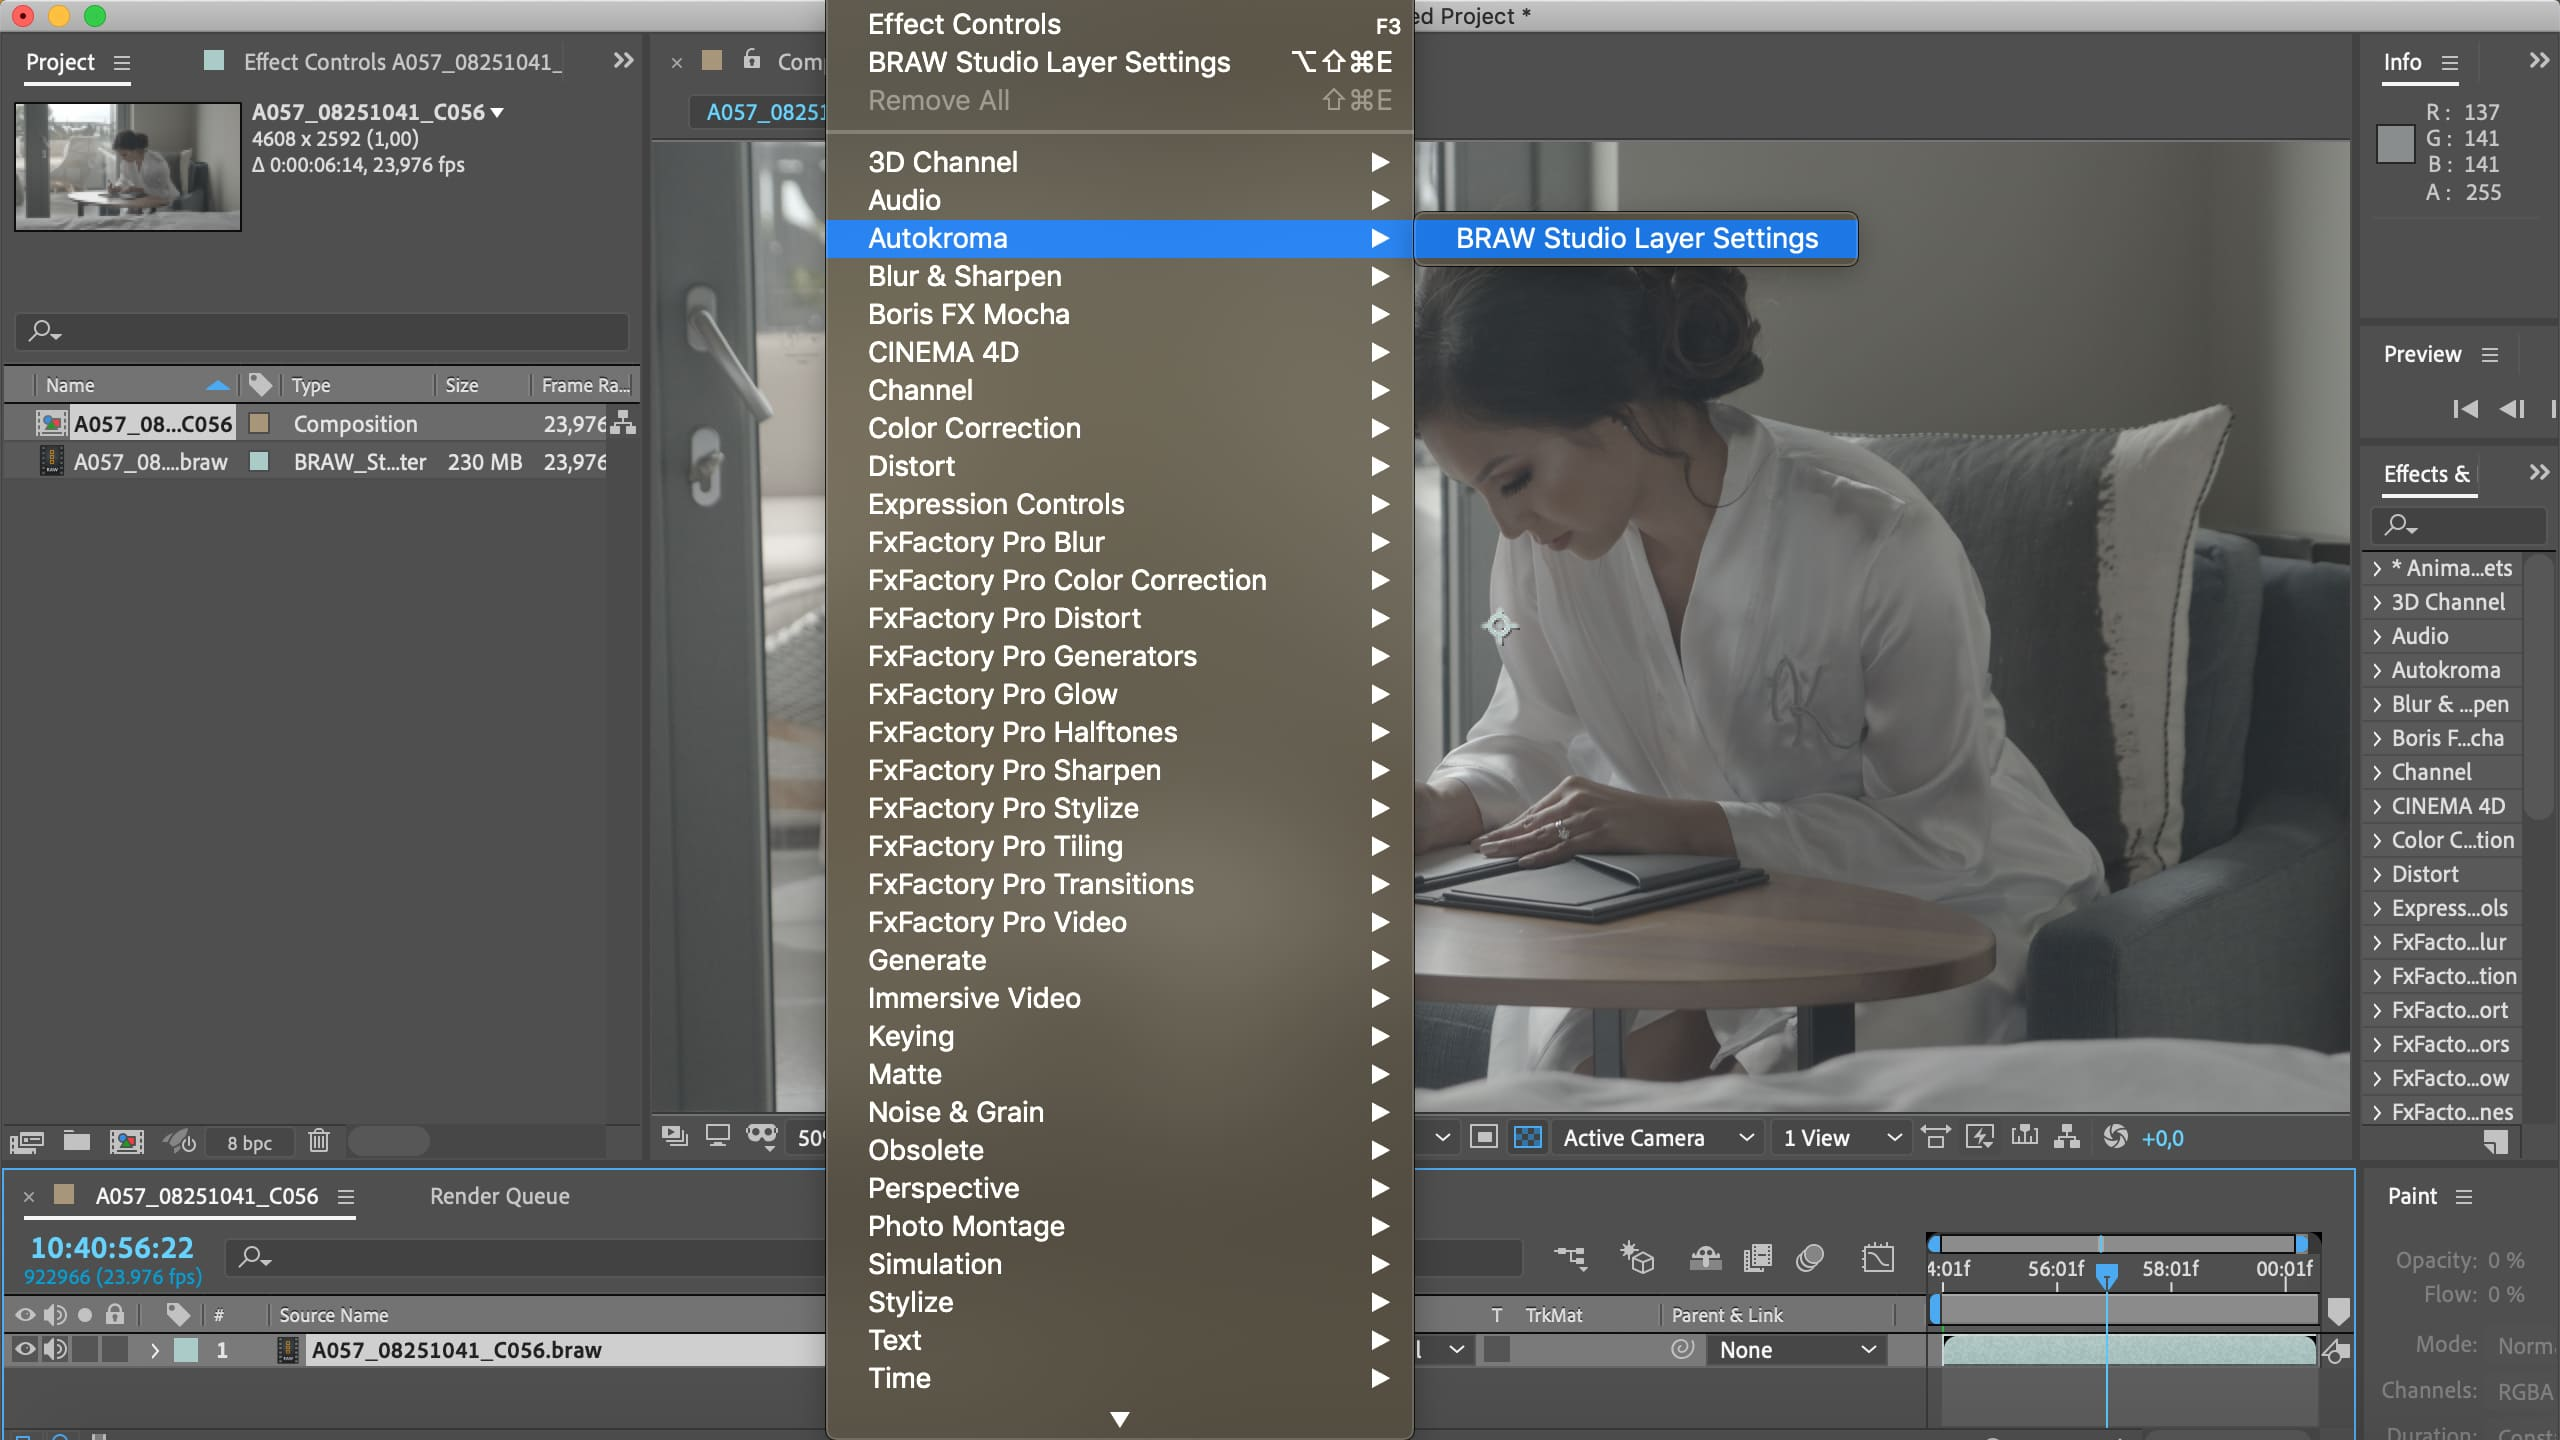 BRAW Studio for Adobe After Effects on Mac OSX (Blackmagic RAW importer plugin screenshot)